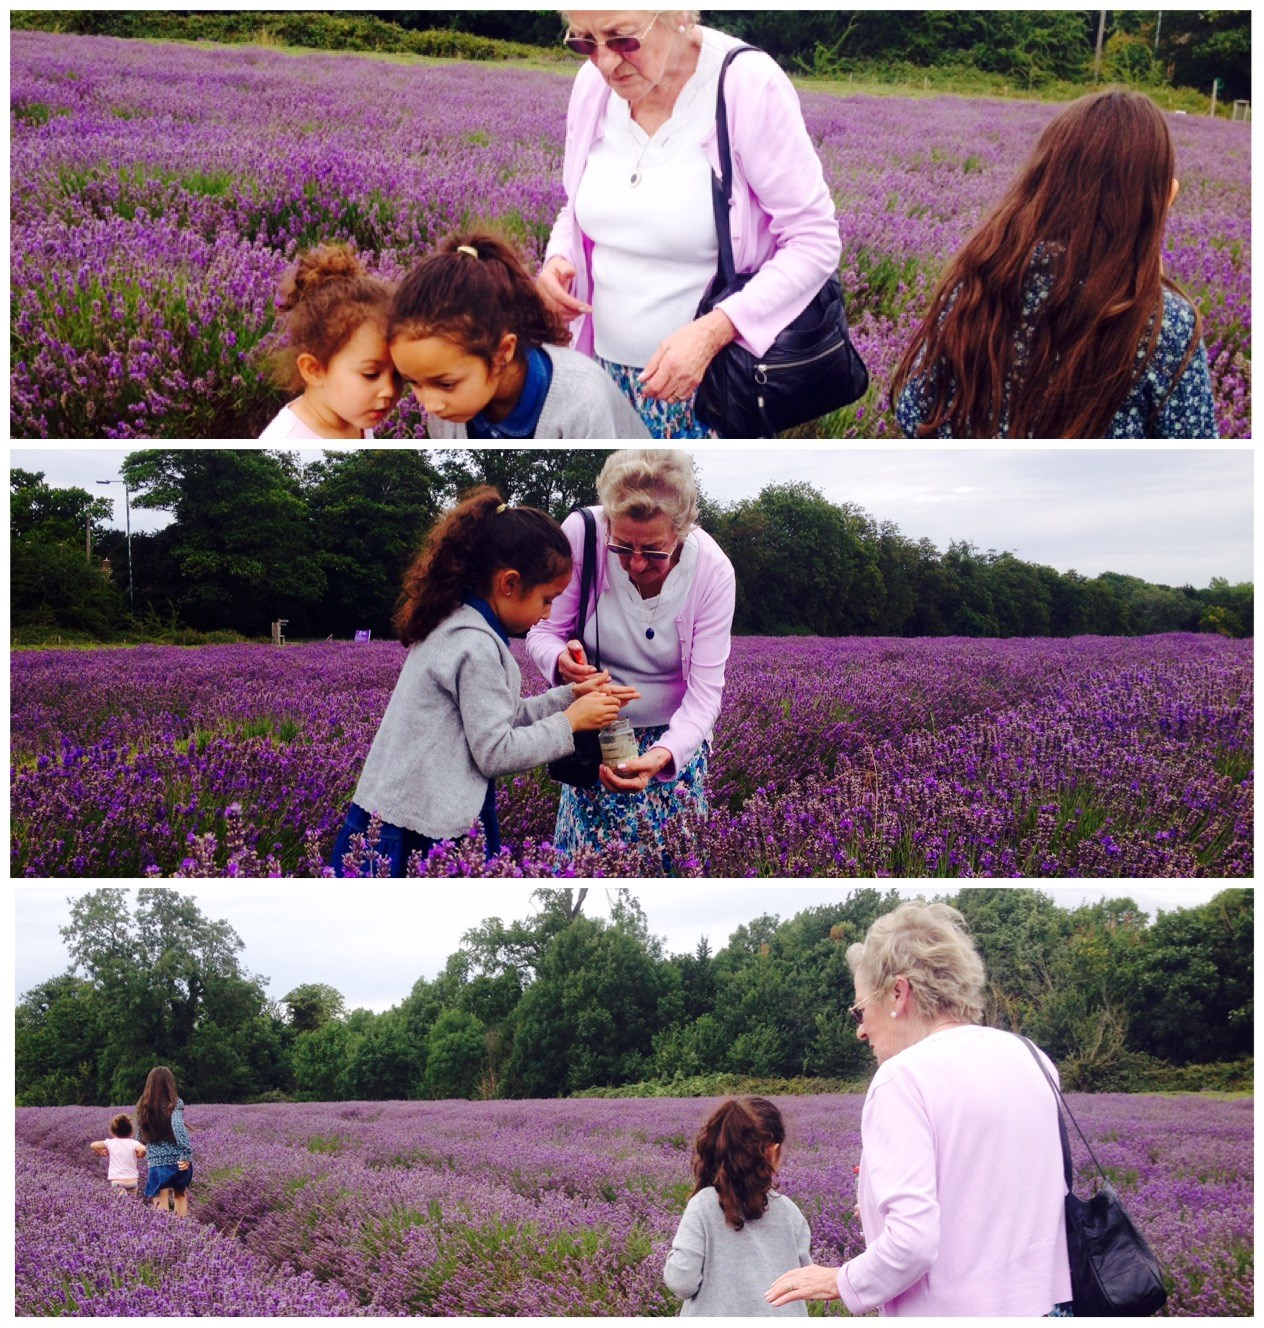 Rita going on a bug hunt in the lavender fields with her girls - Aug 2015